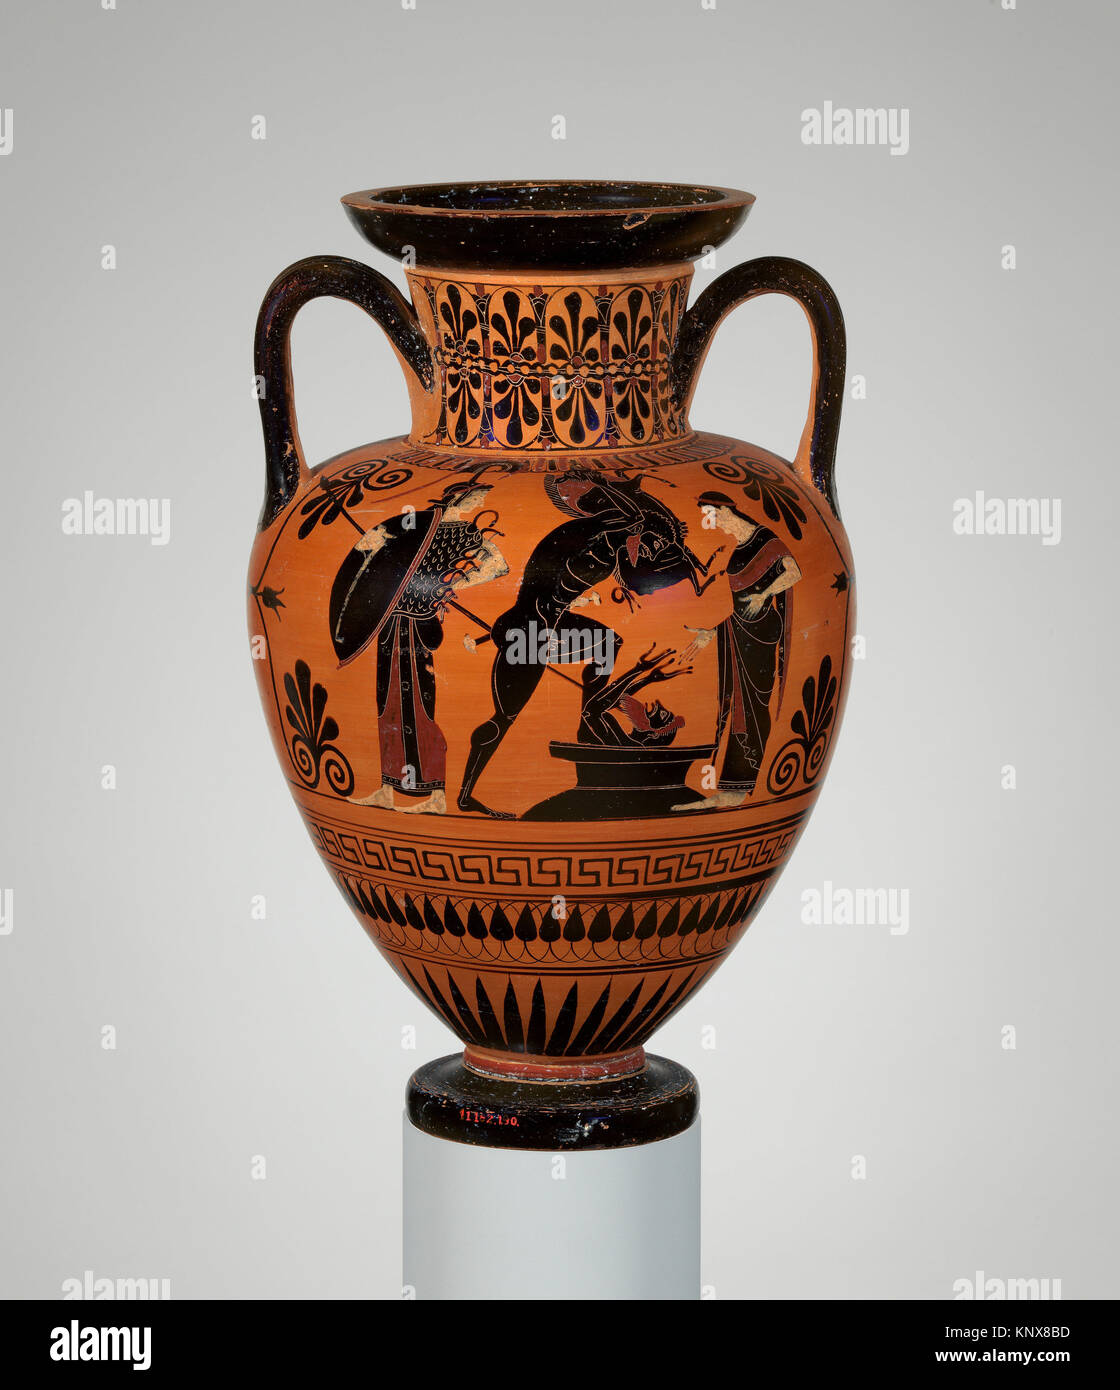 Amphora - Ancient History Encyclopedia